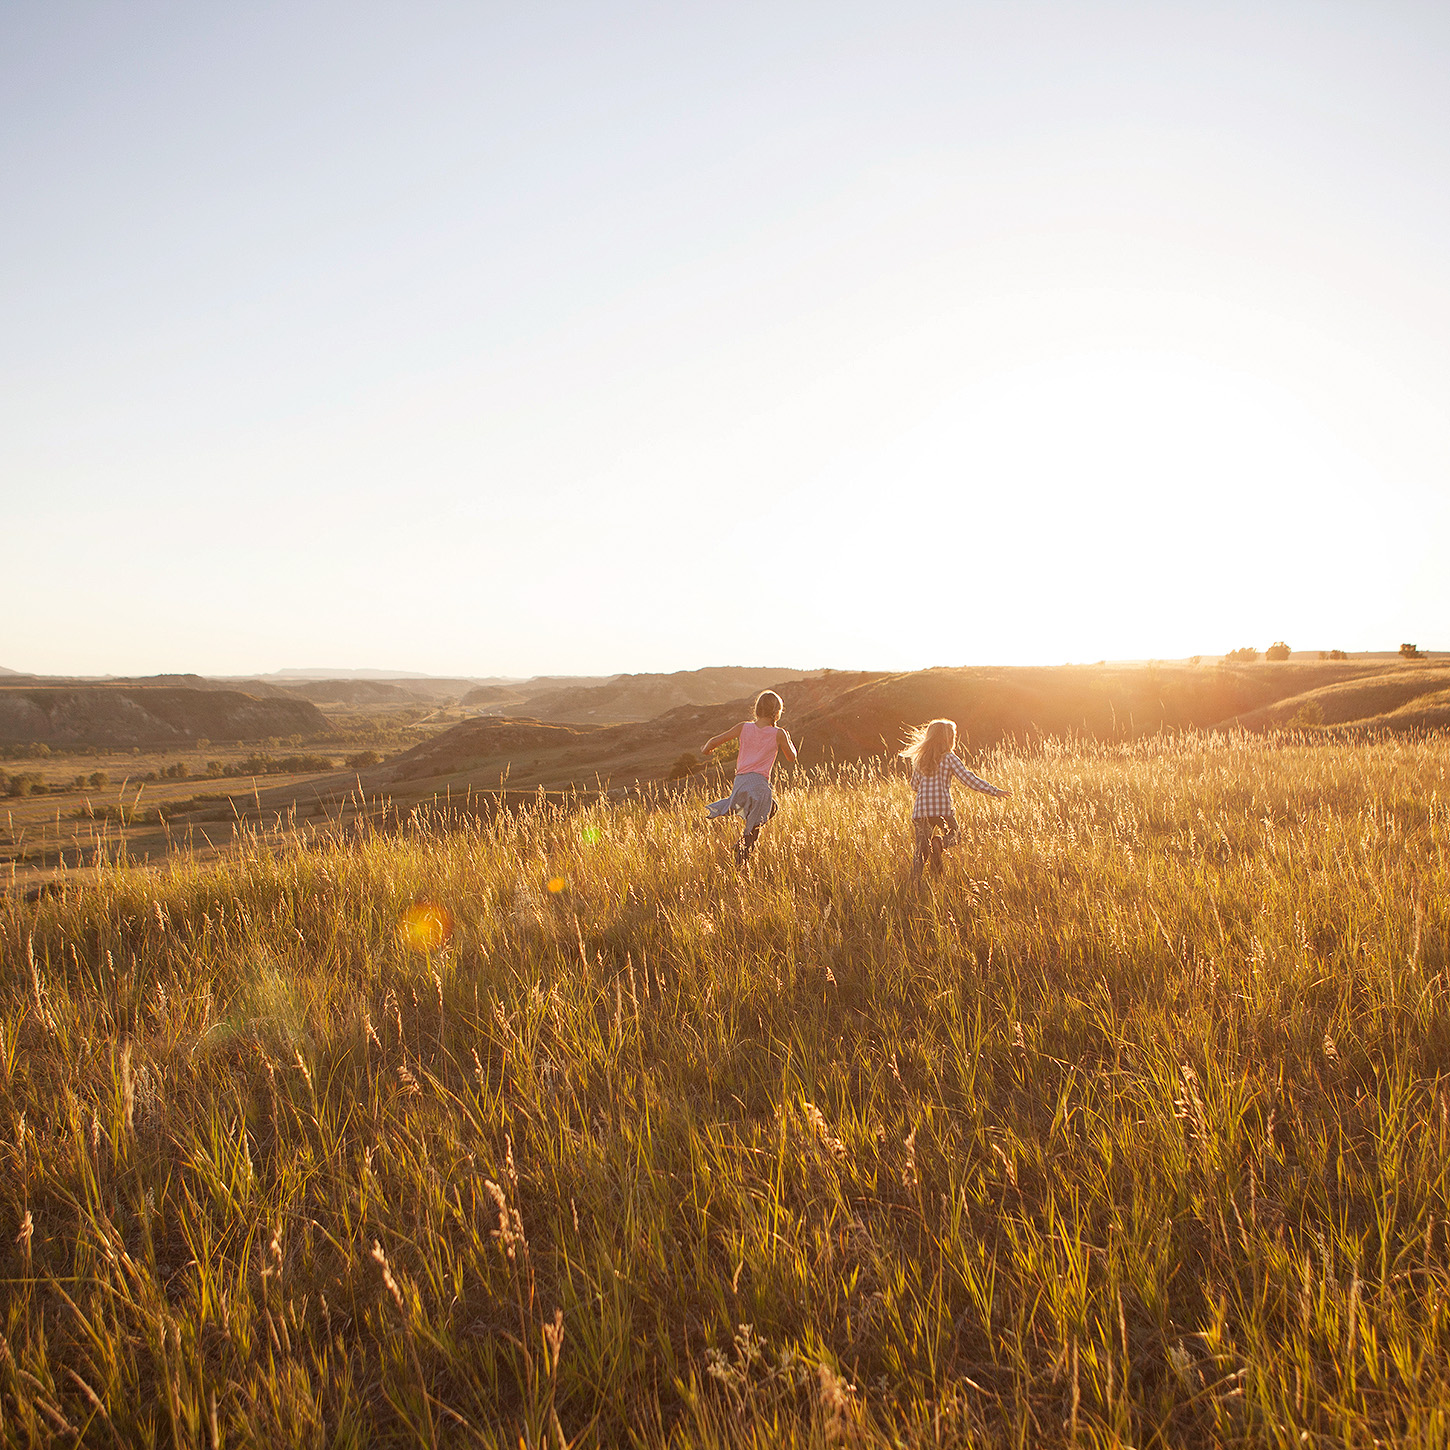 We all want less time spent on things of little significance... But how? 10 Ways to Find More Wide Open Spaces in Your Family's Life.